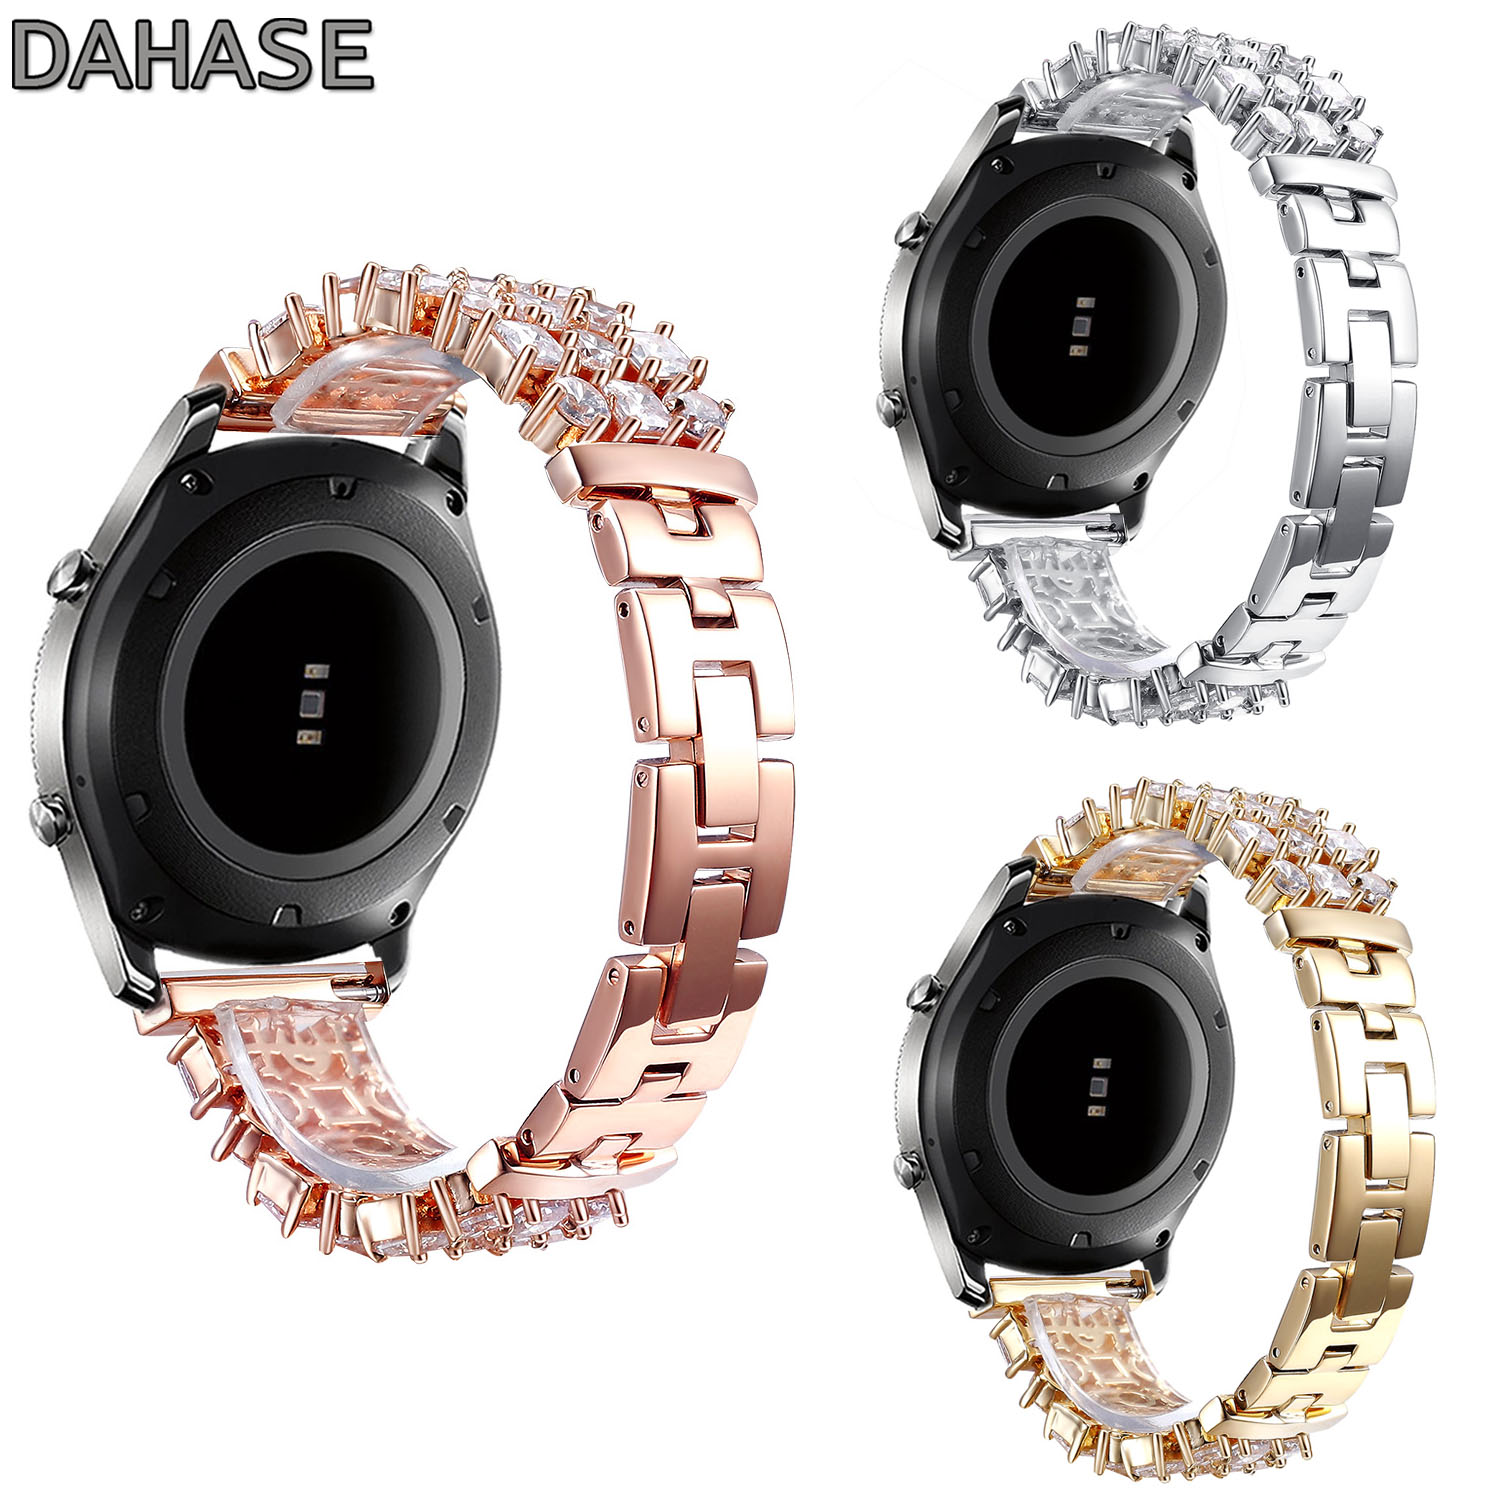 DAHASE Bling Bracelet Diamond Watch Band for Samsung Galaxy Gear S3 Frontier Stainless Steel Link Strap for Gear S3 Classic hoco classic stainless steel wrist strap for samsung galaxy gear s3 frontier band for samsung gear s3 classic watchband s3 strap